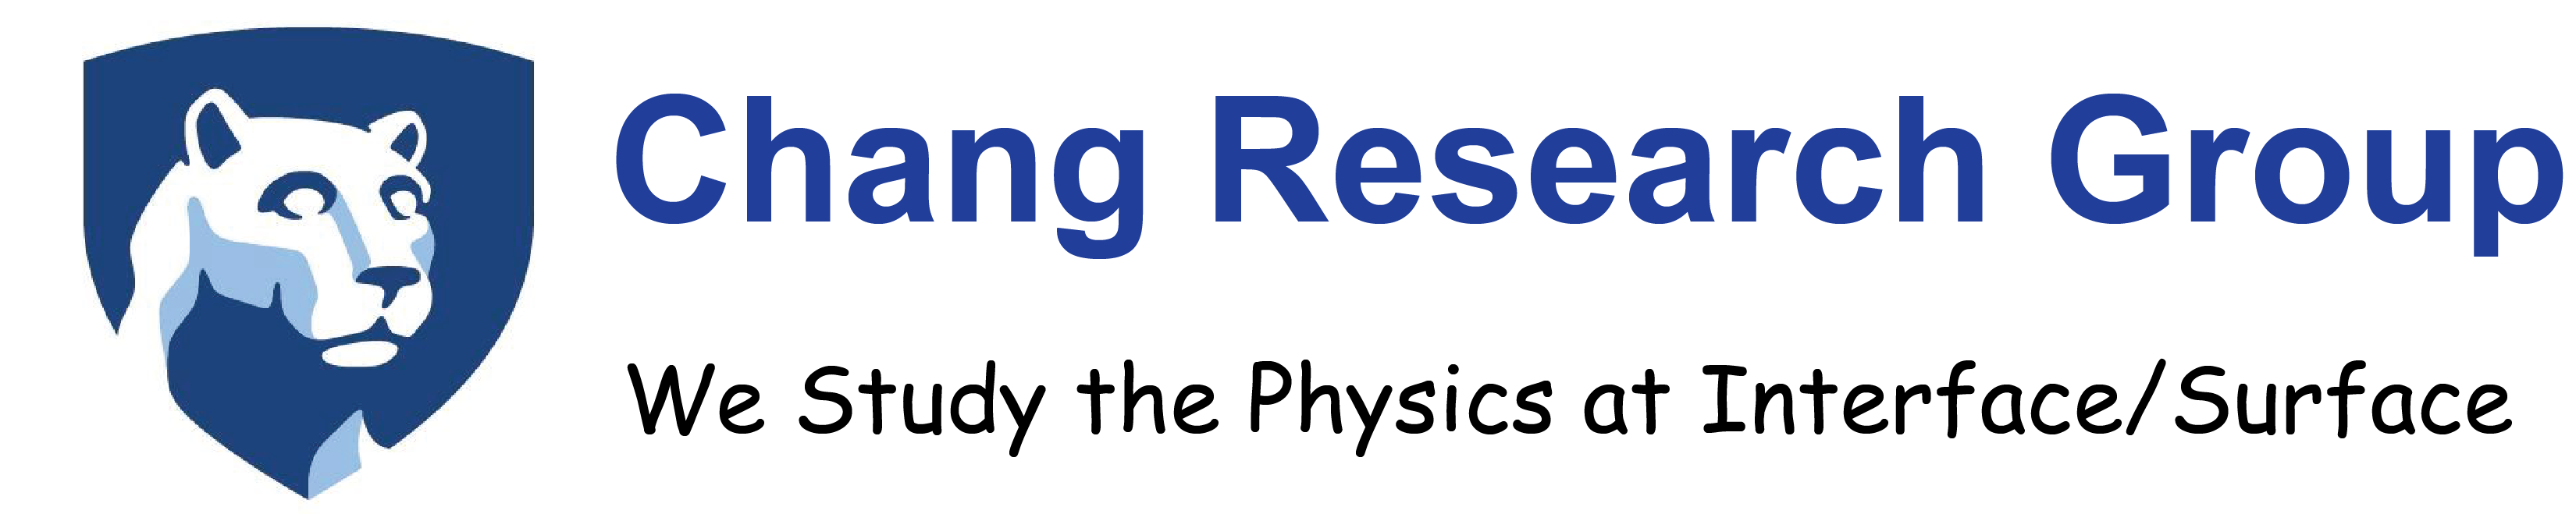 Chang Research Group